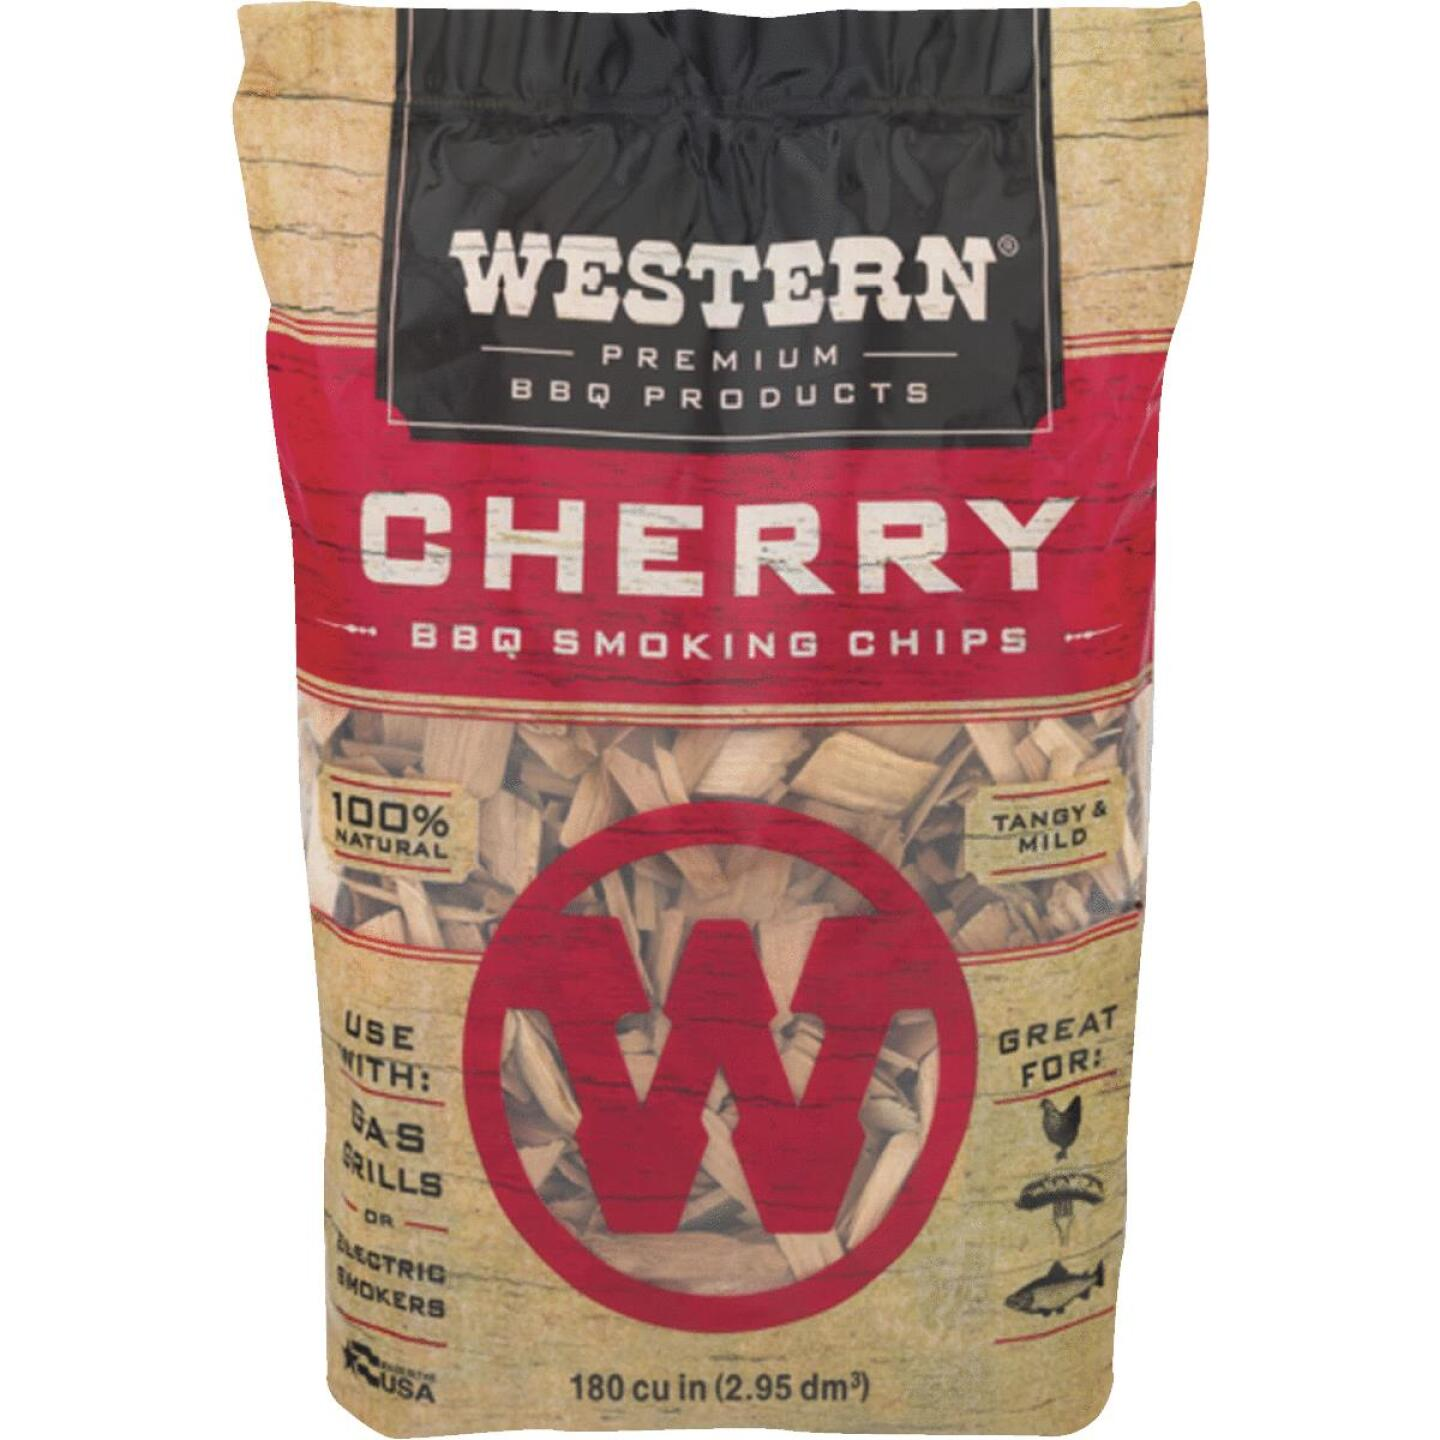 Western 2 Lb. Cherry Wood Smoking Chips Image 1